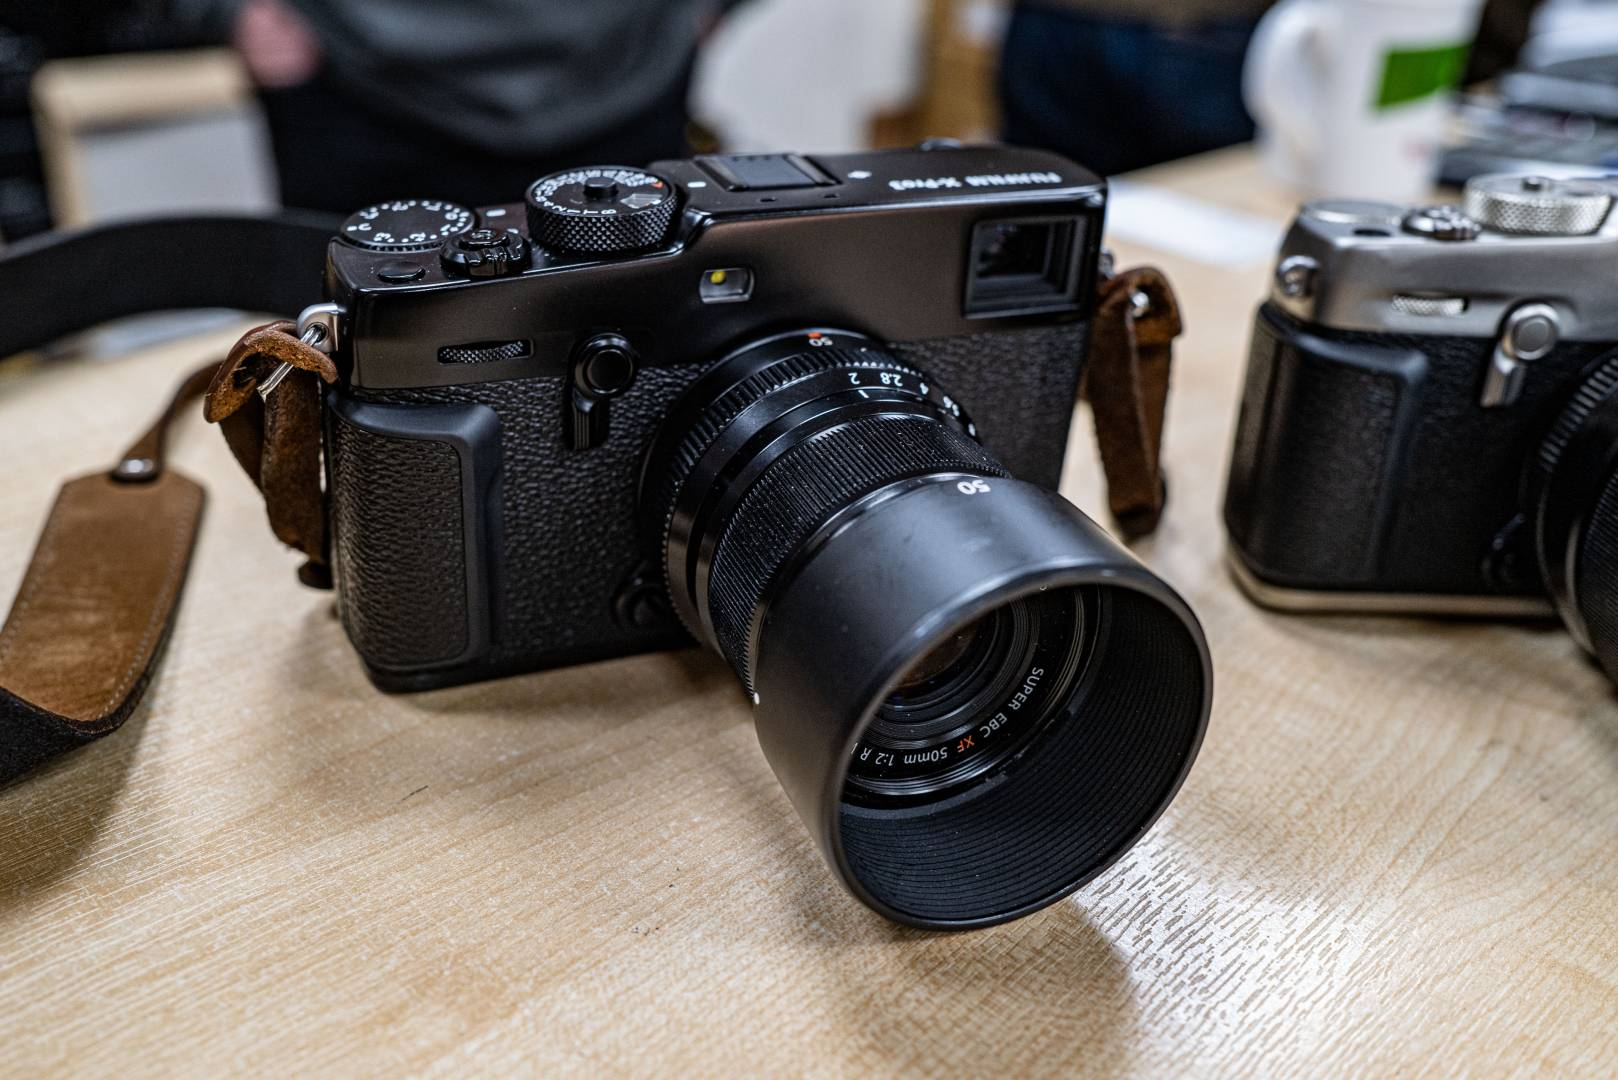 During the past ten years it is Fuji that has made the running in APS-C mirrorless cameras. The new X-Pro 3 out Leicas Leica in the control department. It's a far cry from the perhaps too clever T and CL. If Leica wants to stay in the market, some development is necessary. Image Mike Evans, Leica Q2